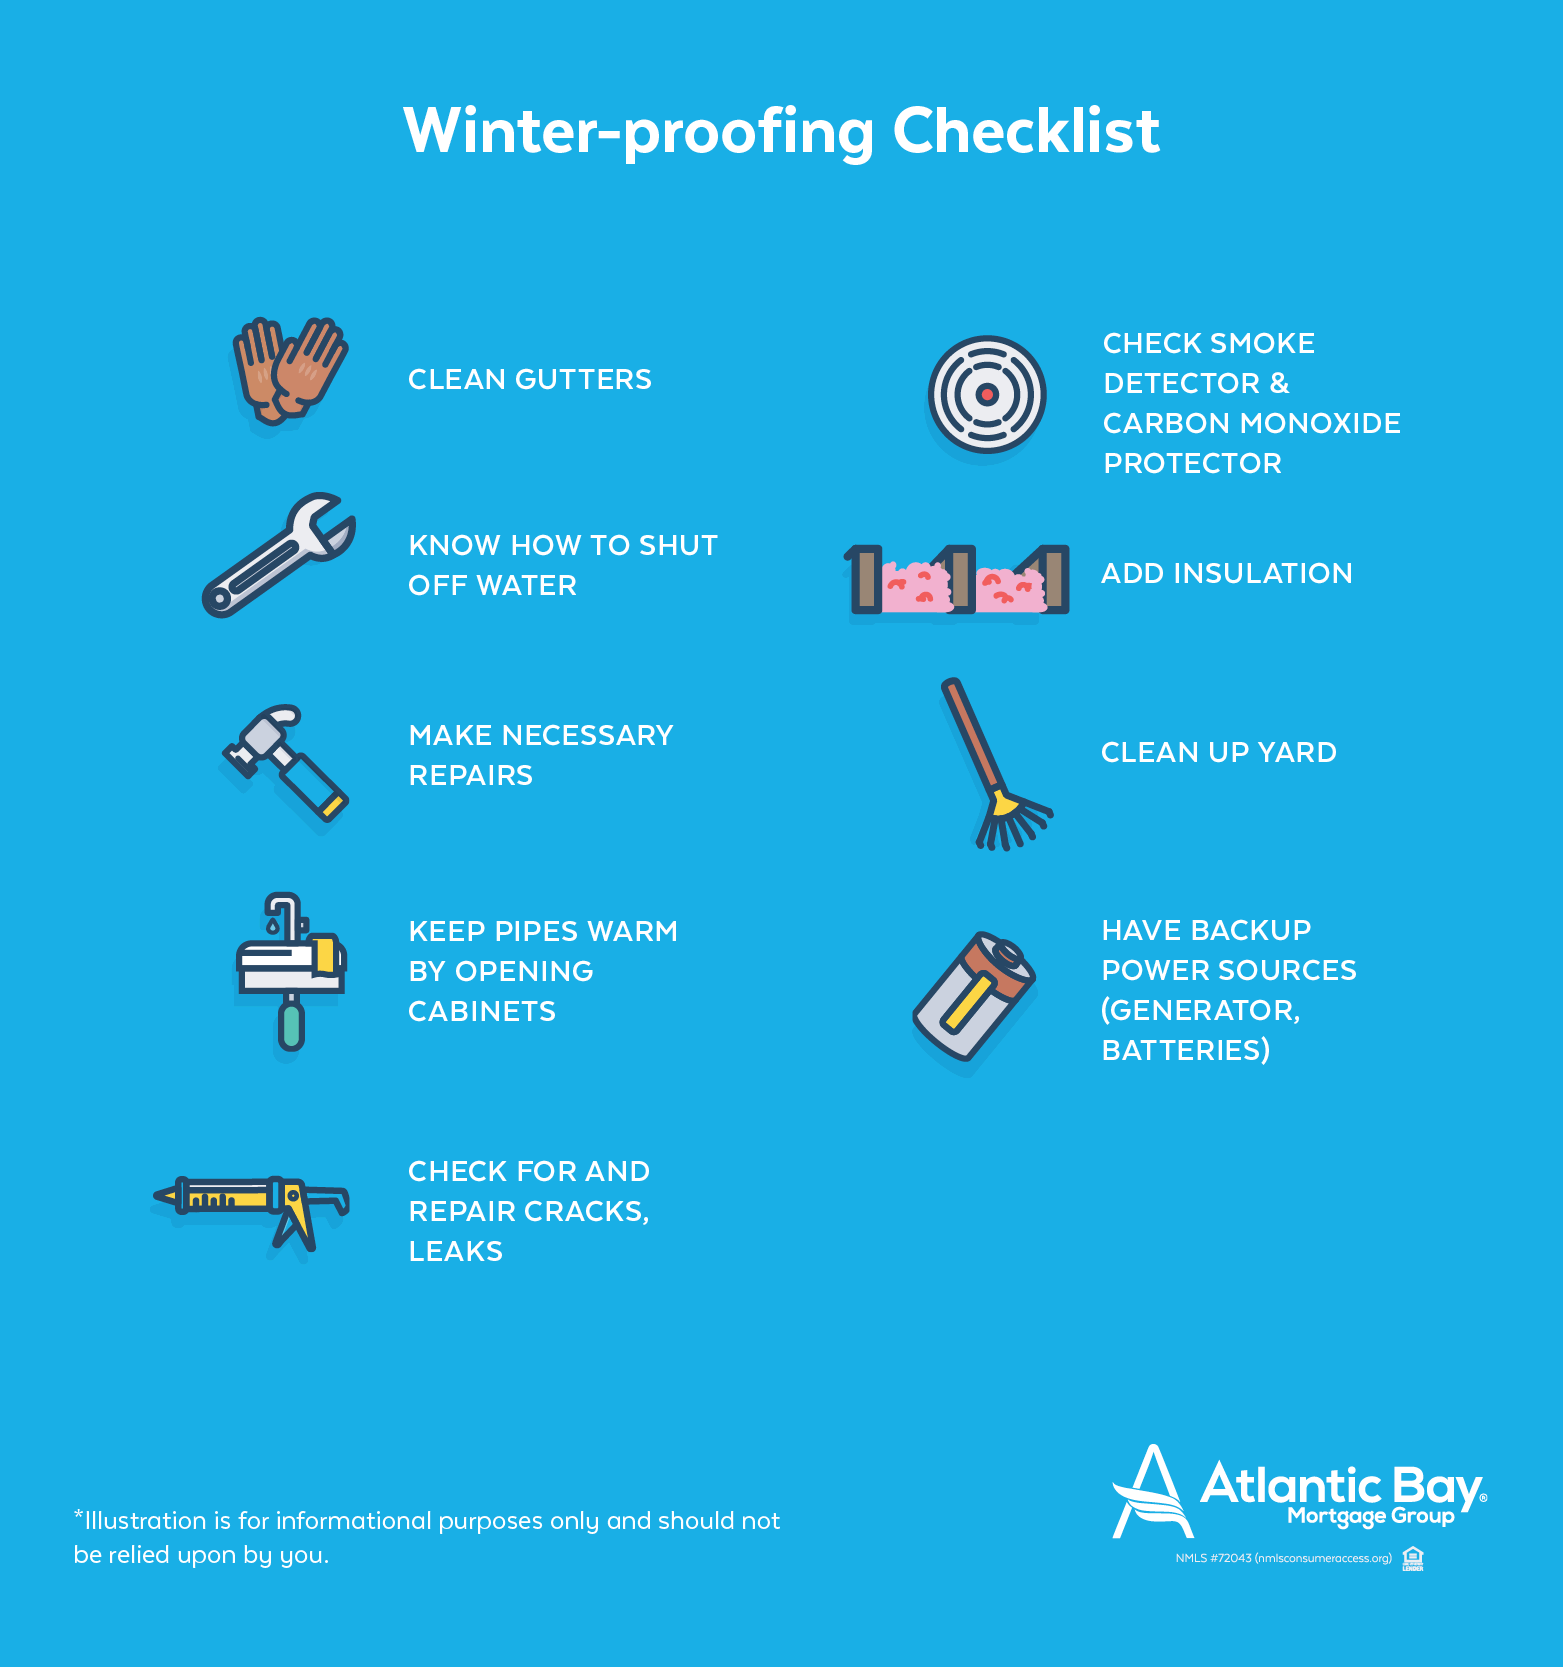 Winter-proofing Checklist